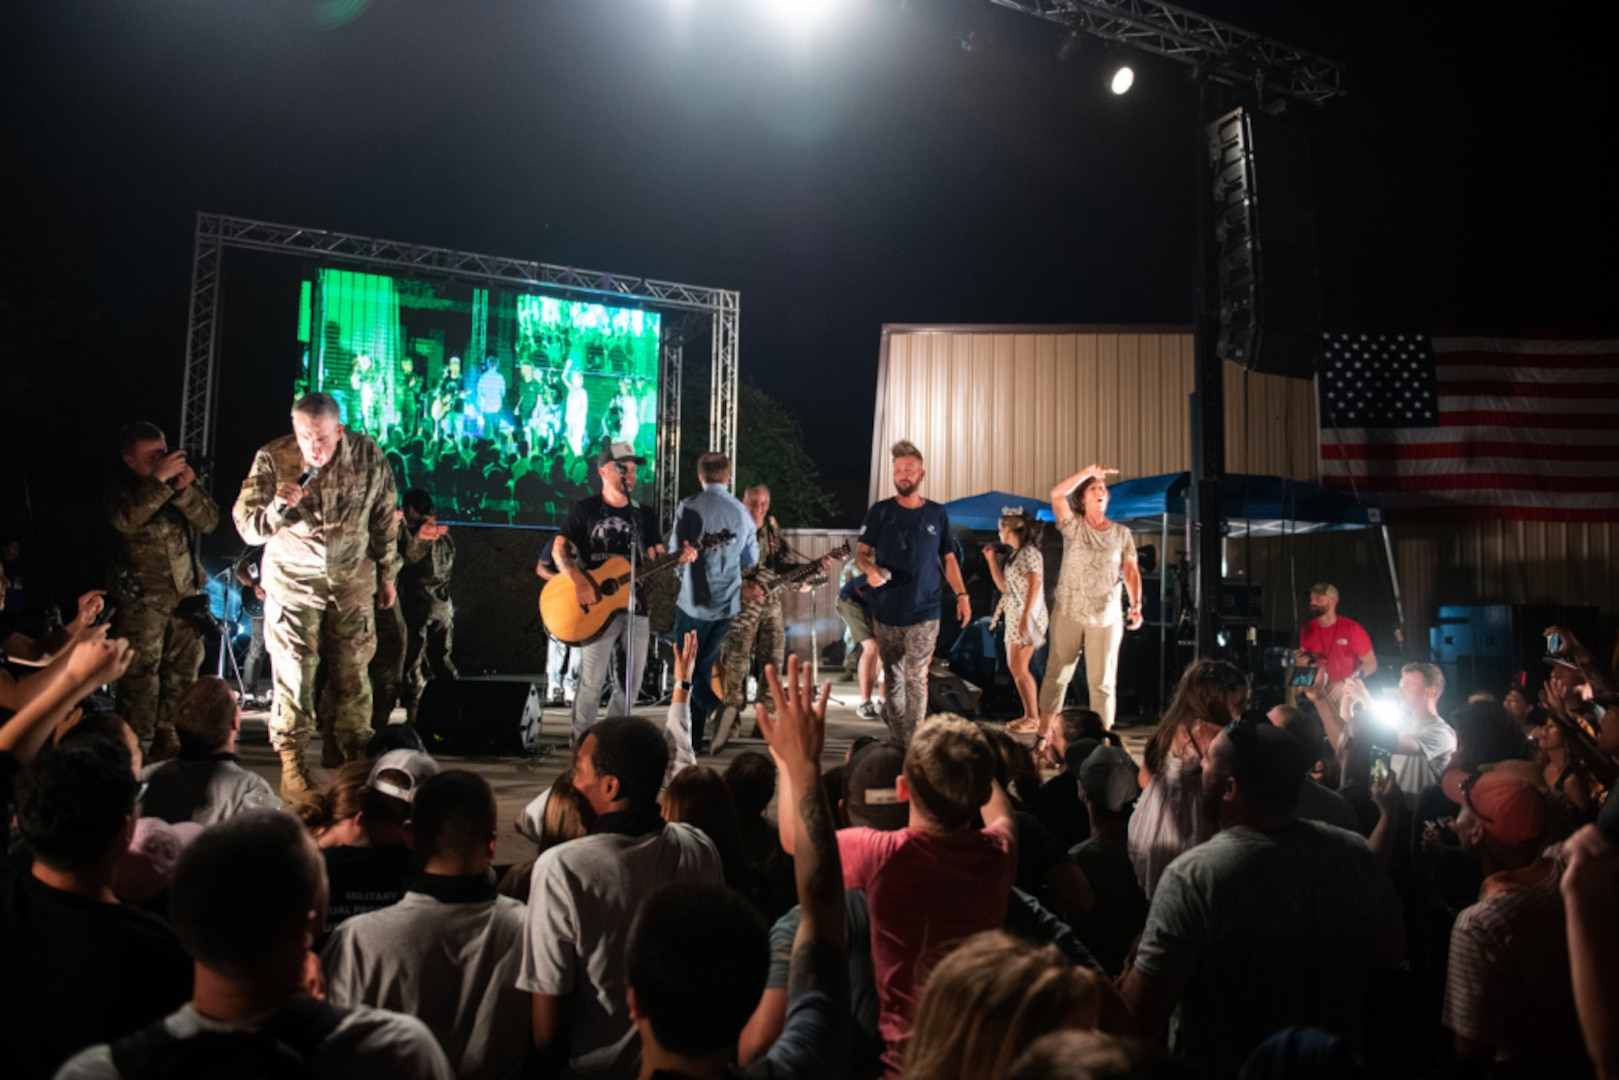 The USO group performs on stage at JBSA-Lackland.